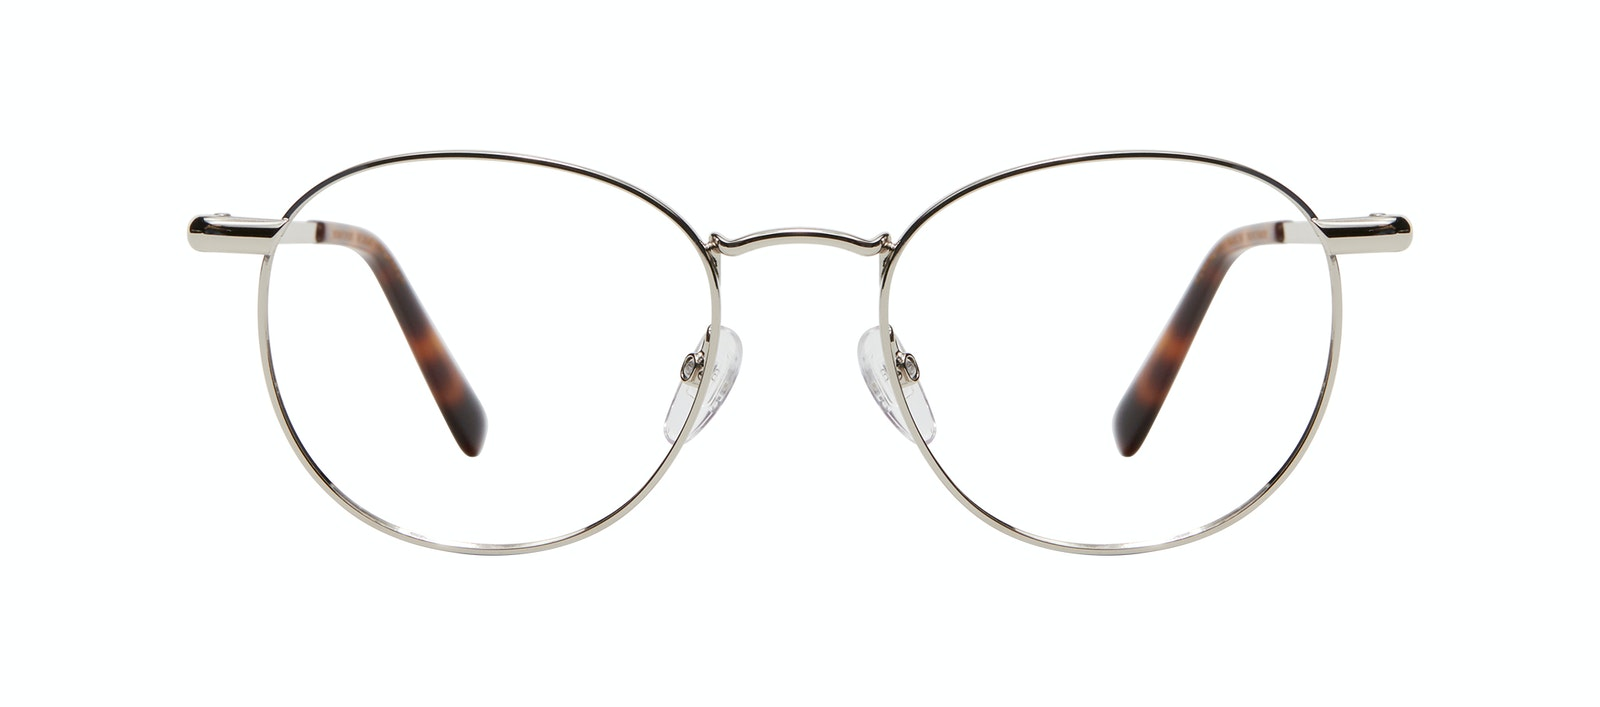 Affordable Fashion Glasses Round Eyeglasses Men Women Divine M Silver Front